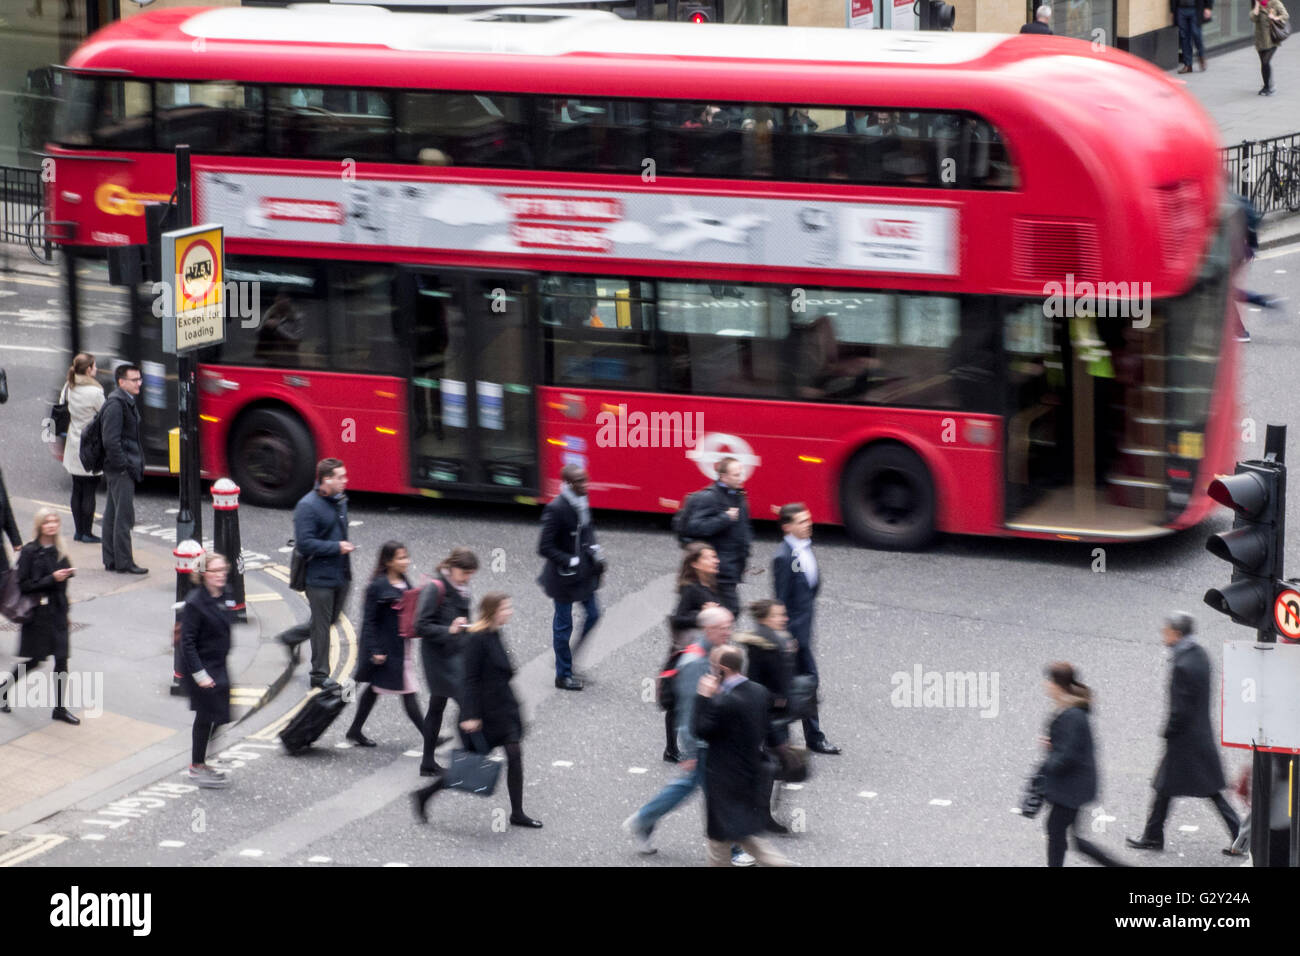 Bus and pedestrians at a busy London junction - Stock Image